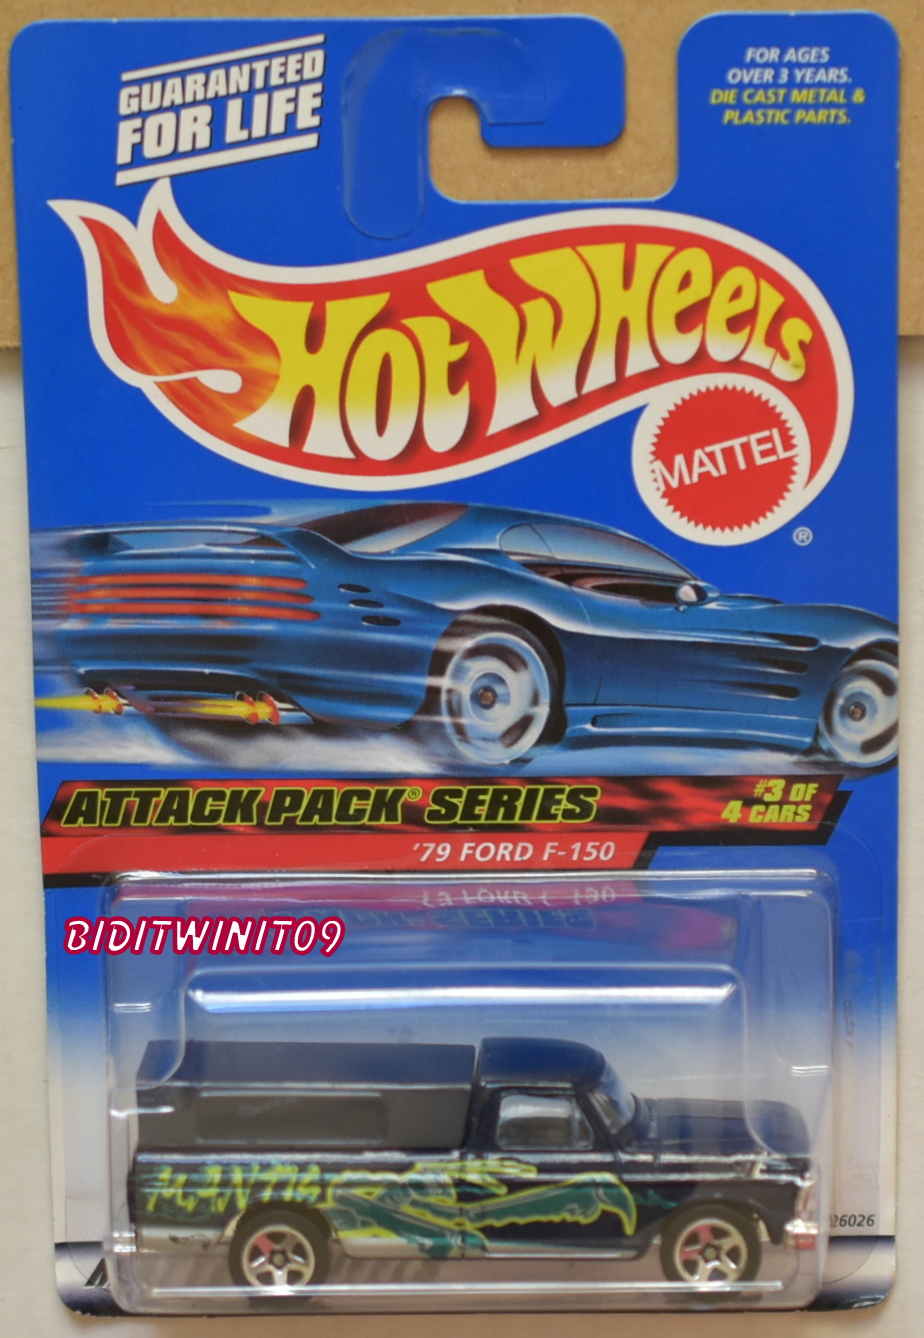 HOT WHEELS 2000 ATTACK PACK SERIES '79 FORD F-150 #023